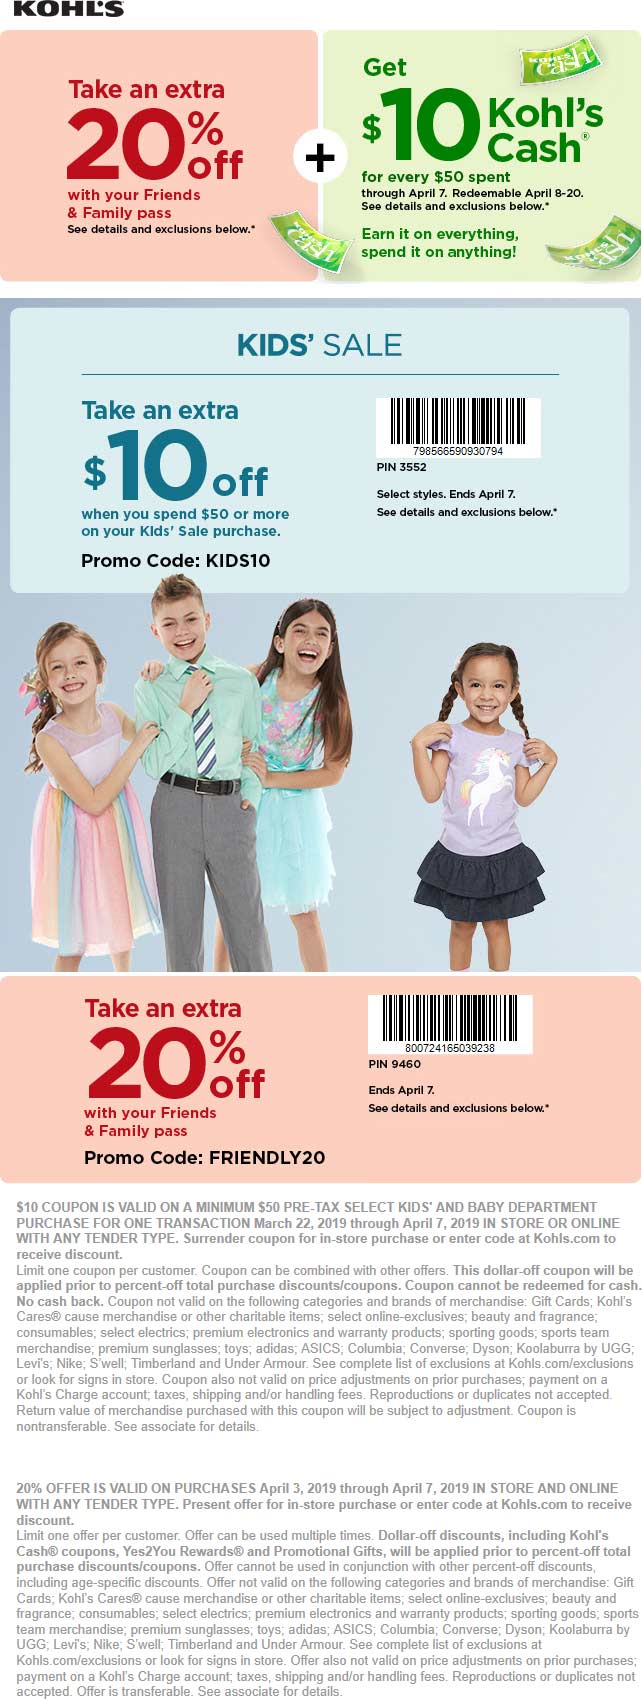 Kohls Coupon January 2020 Extra 20% off at Kohls, or online via promo code FRIENDLY20